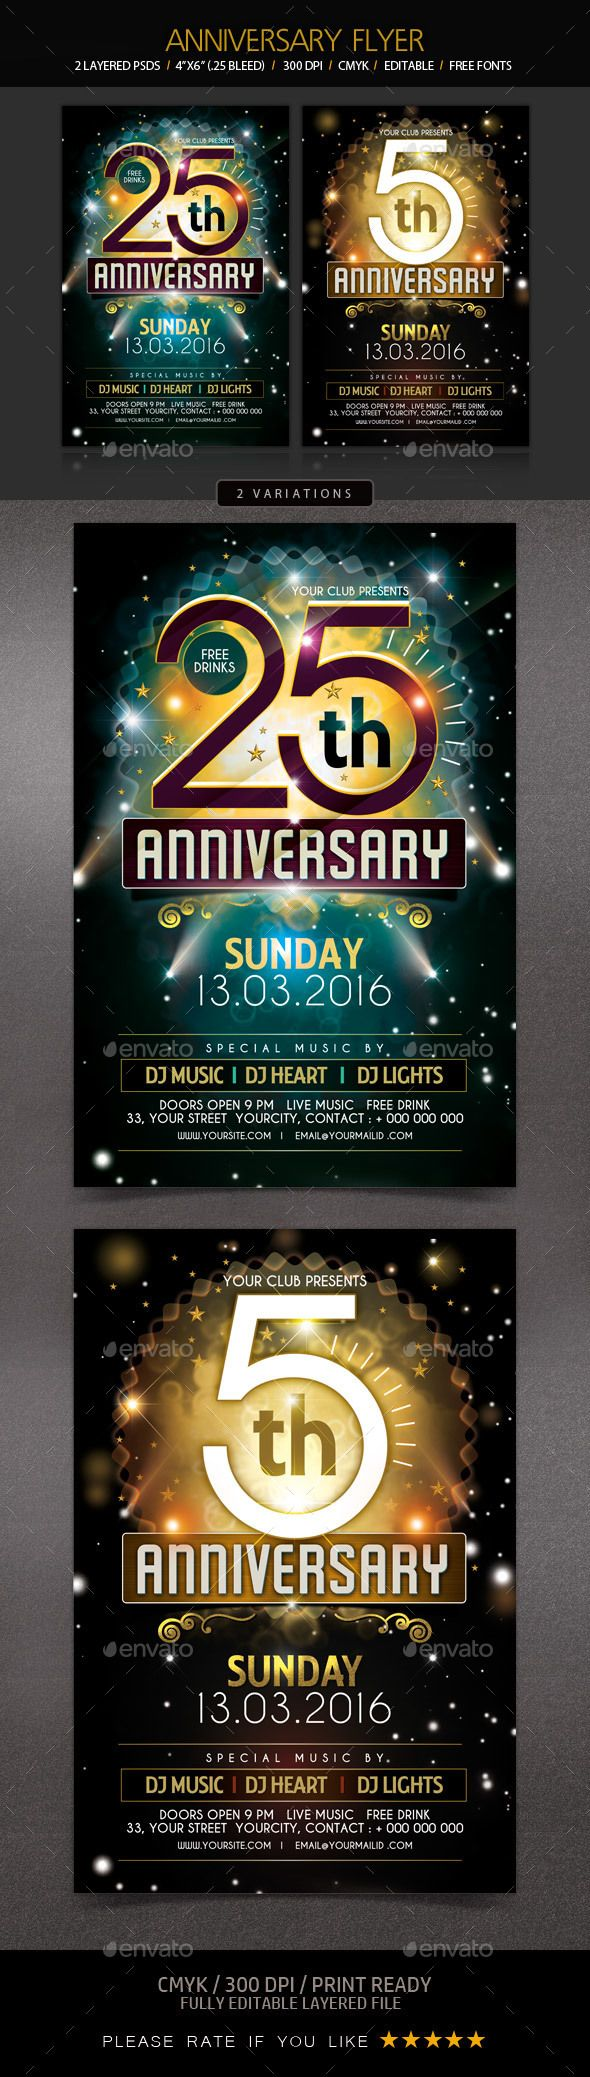 Church Anniversary Flyer Template – Anniversary Flyer